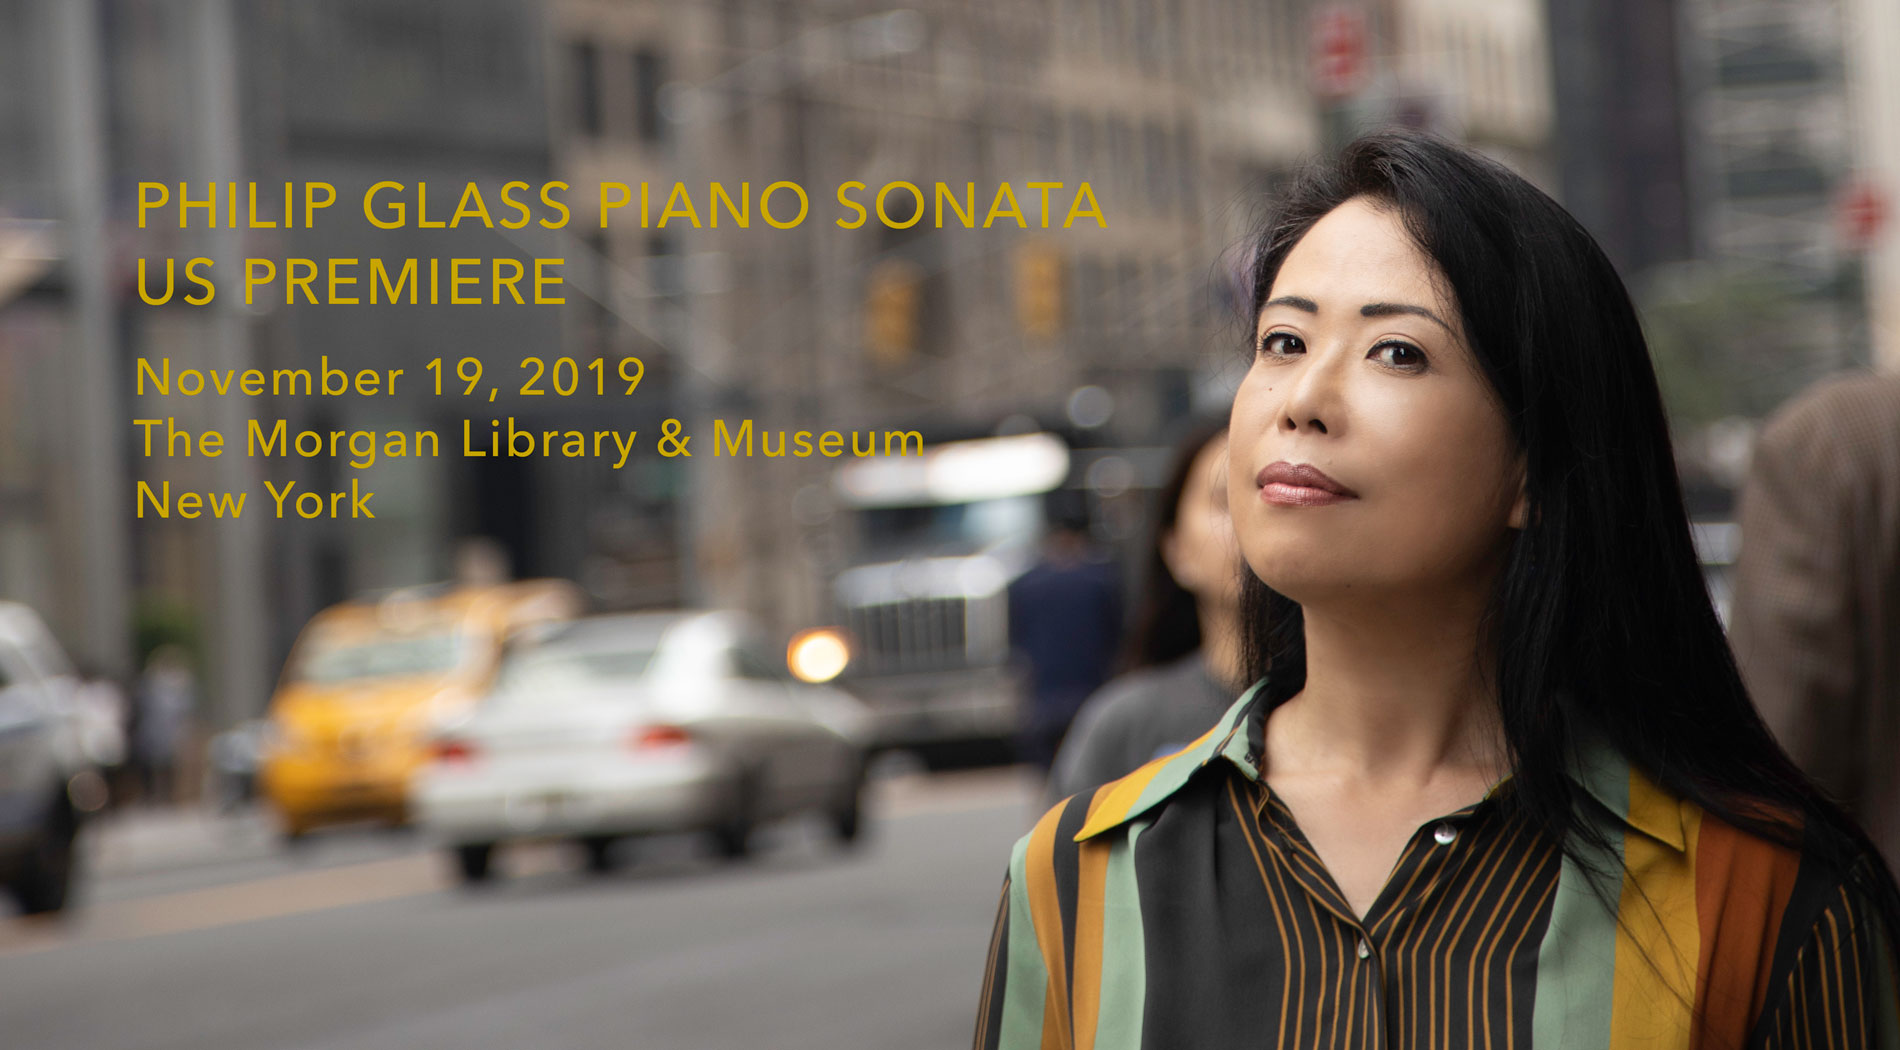 Maki Namekawa | NY Premiere of Philip Glass Piano Sonata